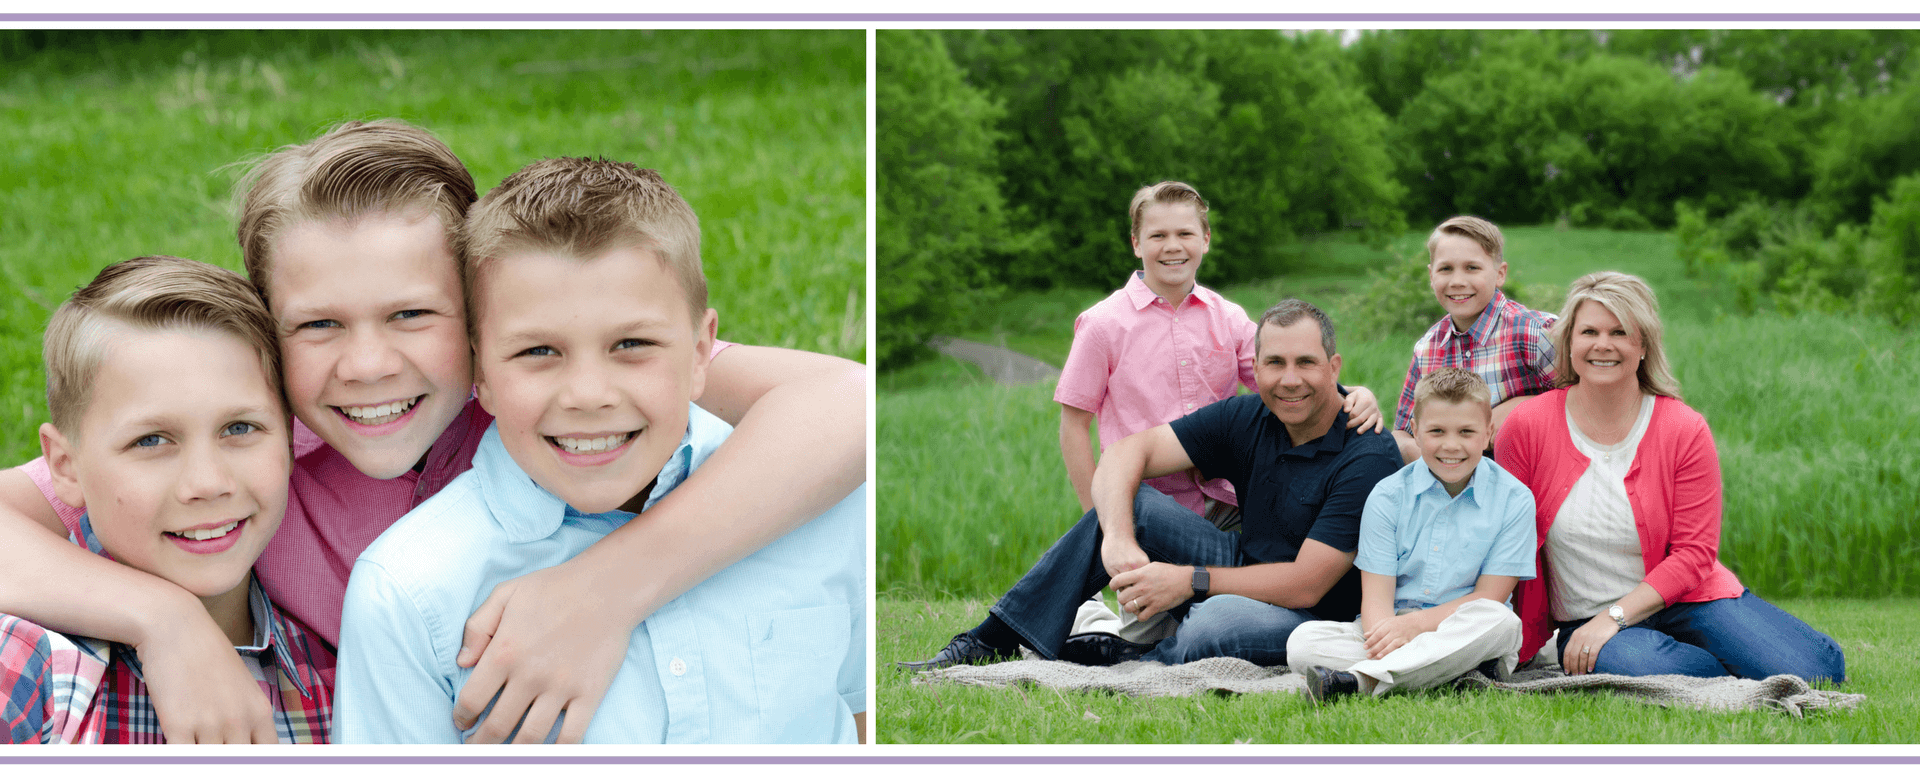 Woodbury MN Photographer | Professional Family Photographer | Focus Photography by Susan